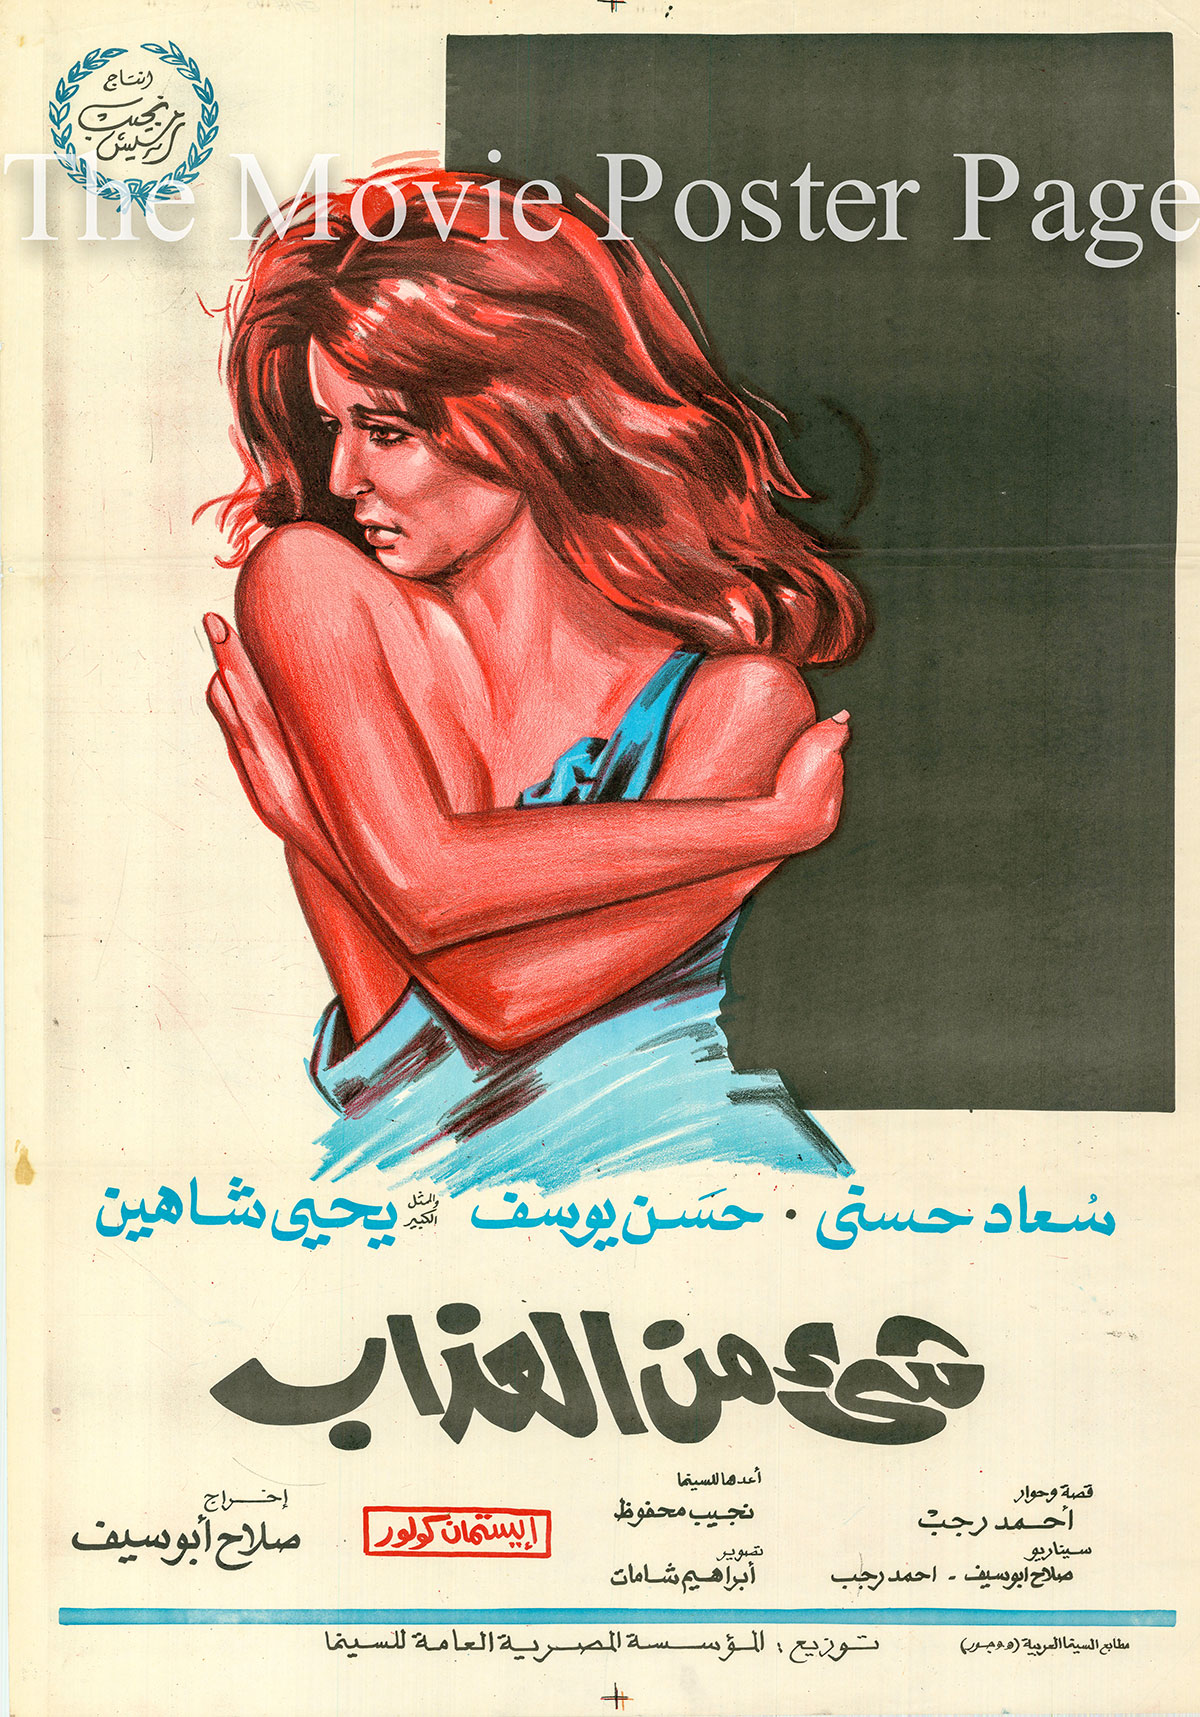 Pictured is an Egyptian promotional poster for the 1969 Salah Abouseif film Some Suffering starring Soad Hosny